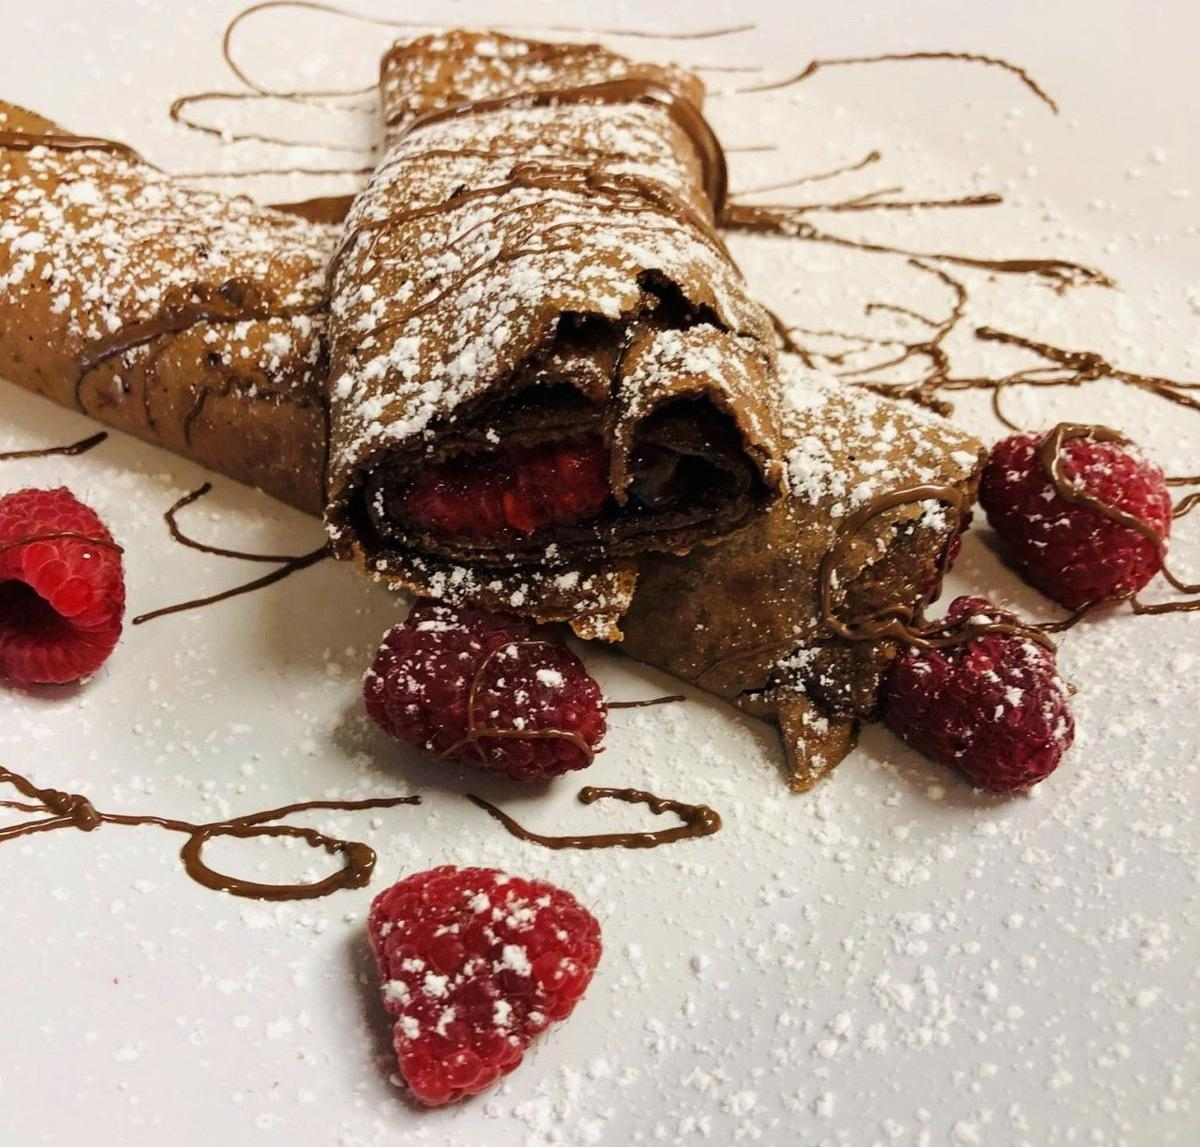 20201104-gm-foodguy-Chocolate raspberry crepe from Creperi Cafe courtesy of Creperie Cafe.jpg